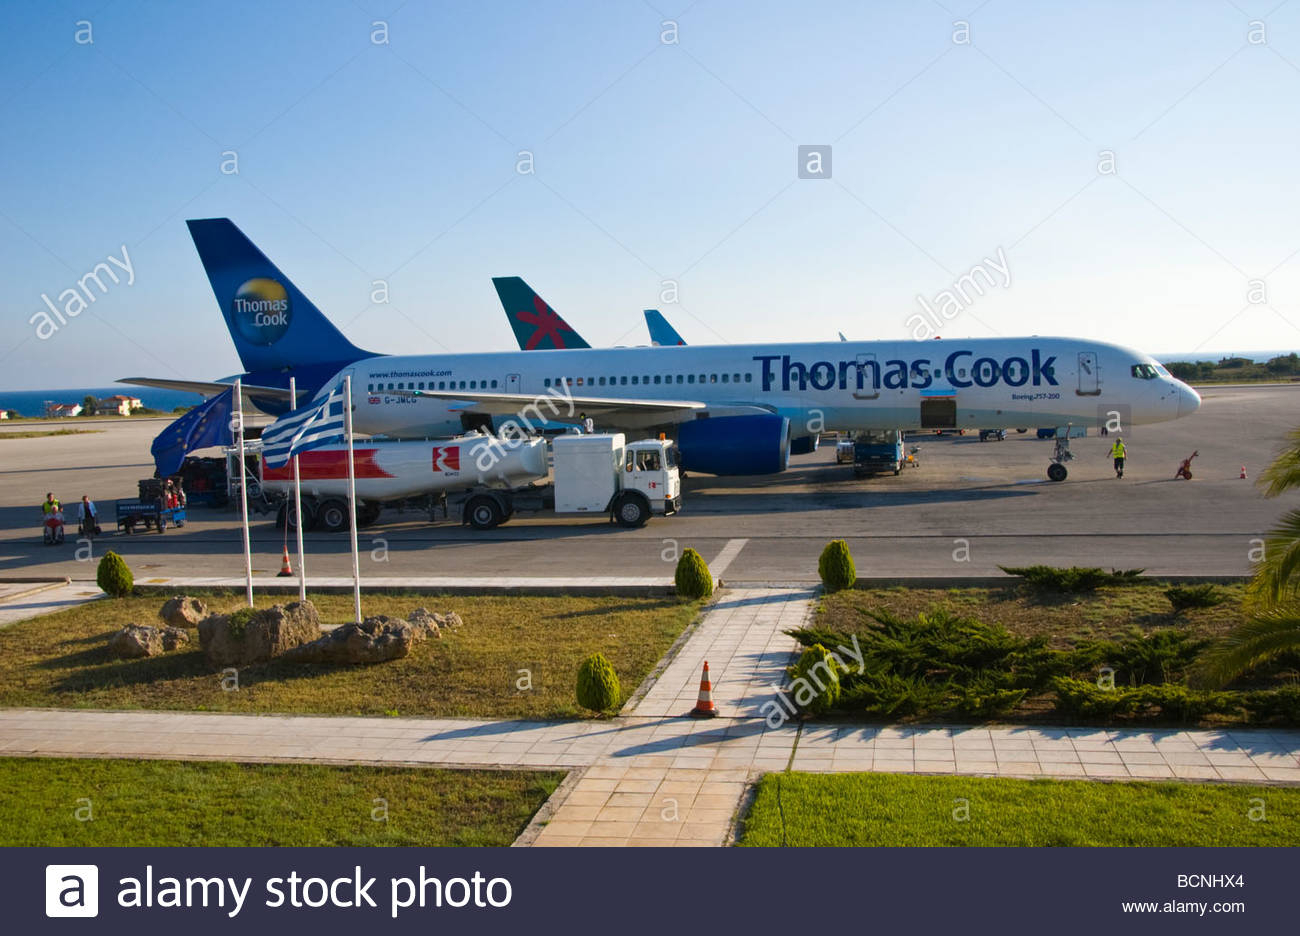 Boeing 757200 On The Tarmac At Kefalonia Airport On The